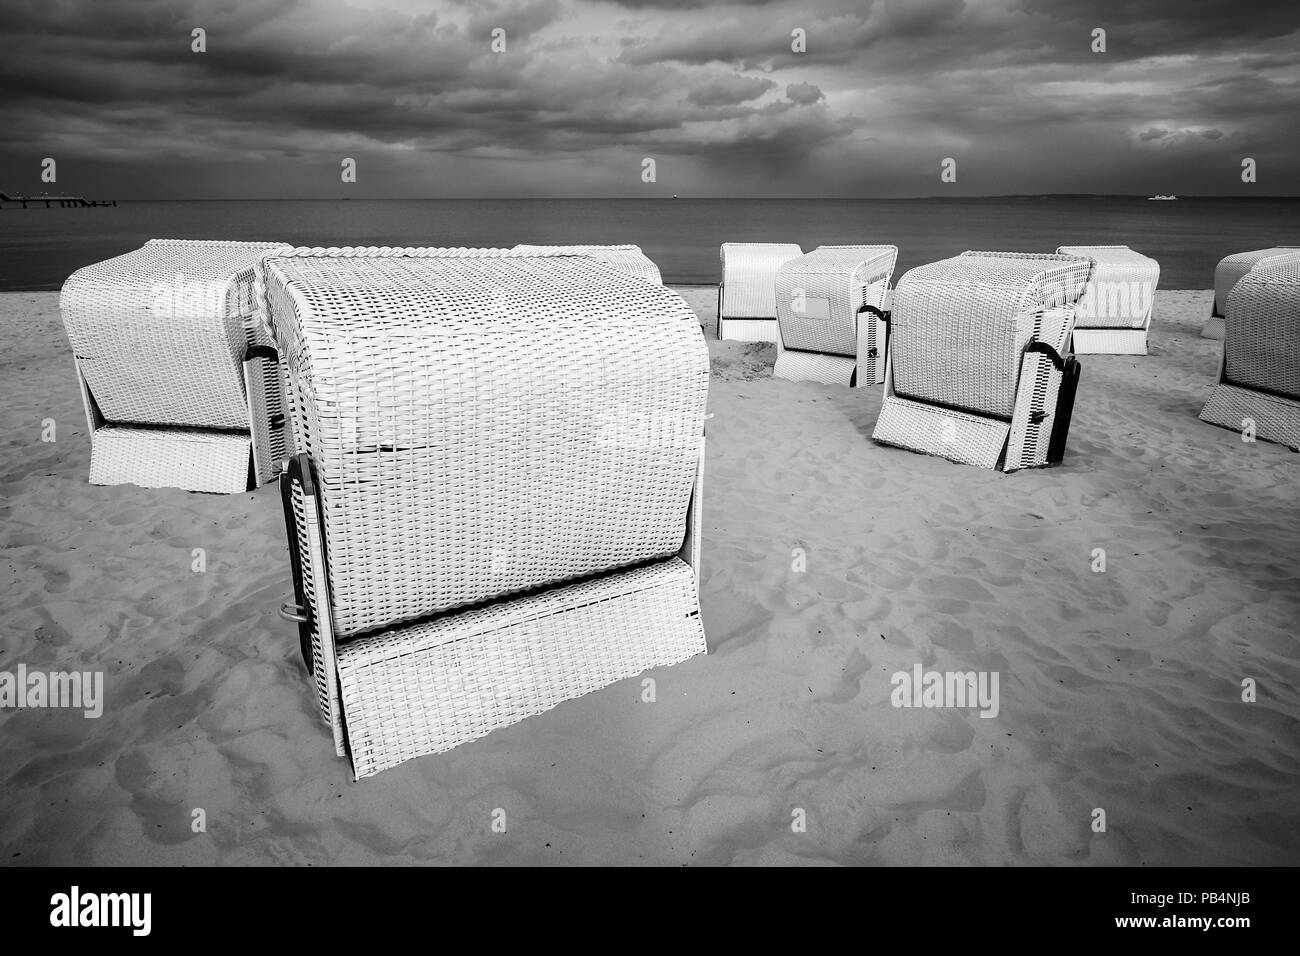 Shabby Chic Cuxhaven Basket Chairs Stock Photos Basket Chairs Stock Images Alamy